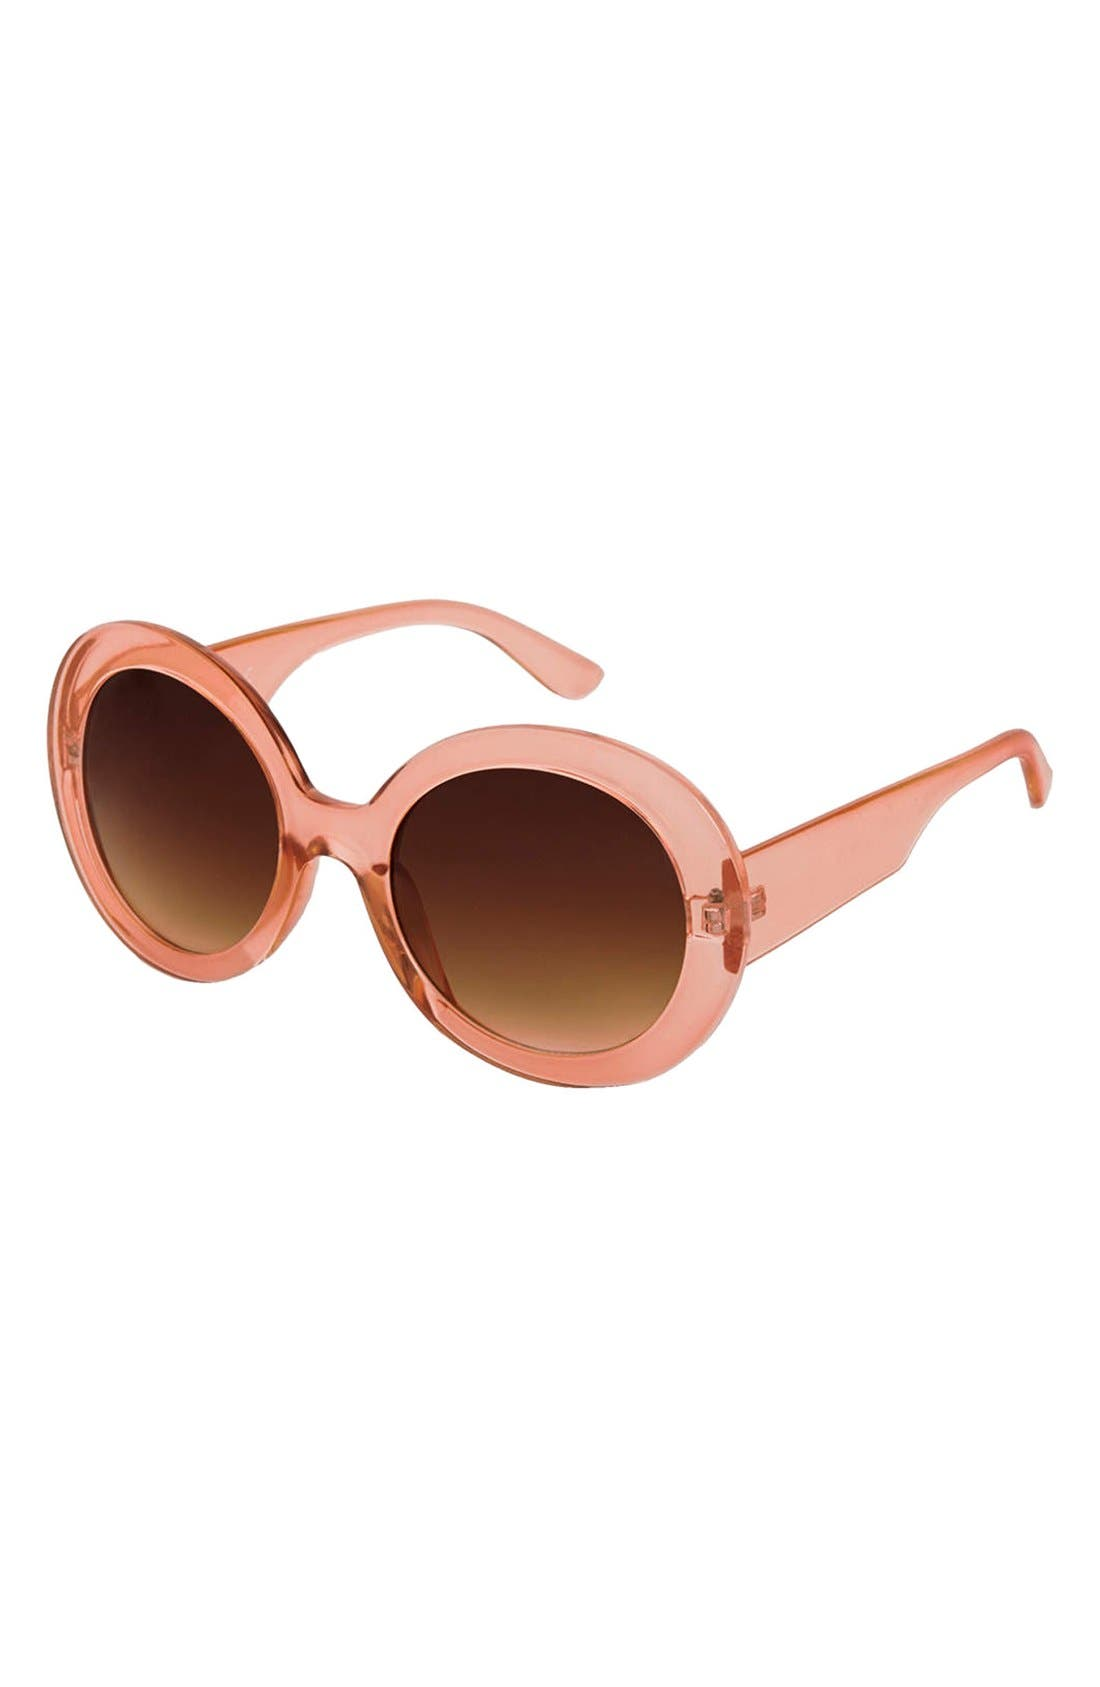 Alternate Image 1 Selected - Topshop 'Petra' 53mm Oversize Round Sunglasses